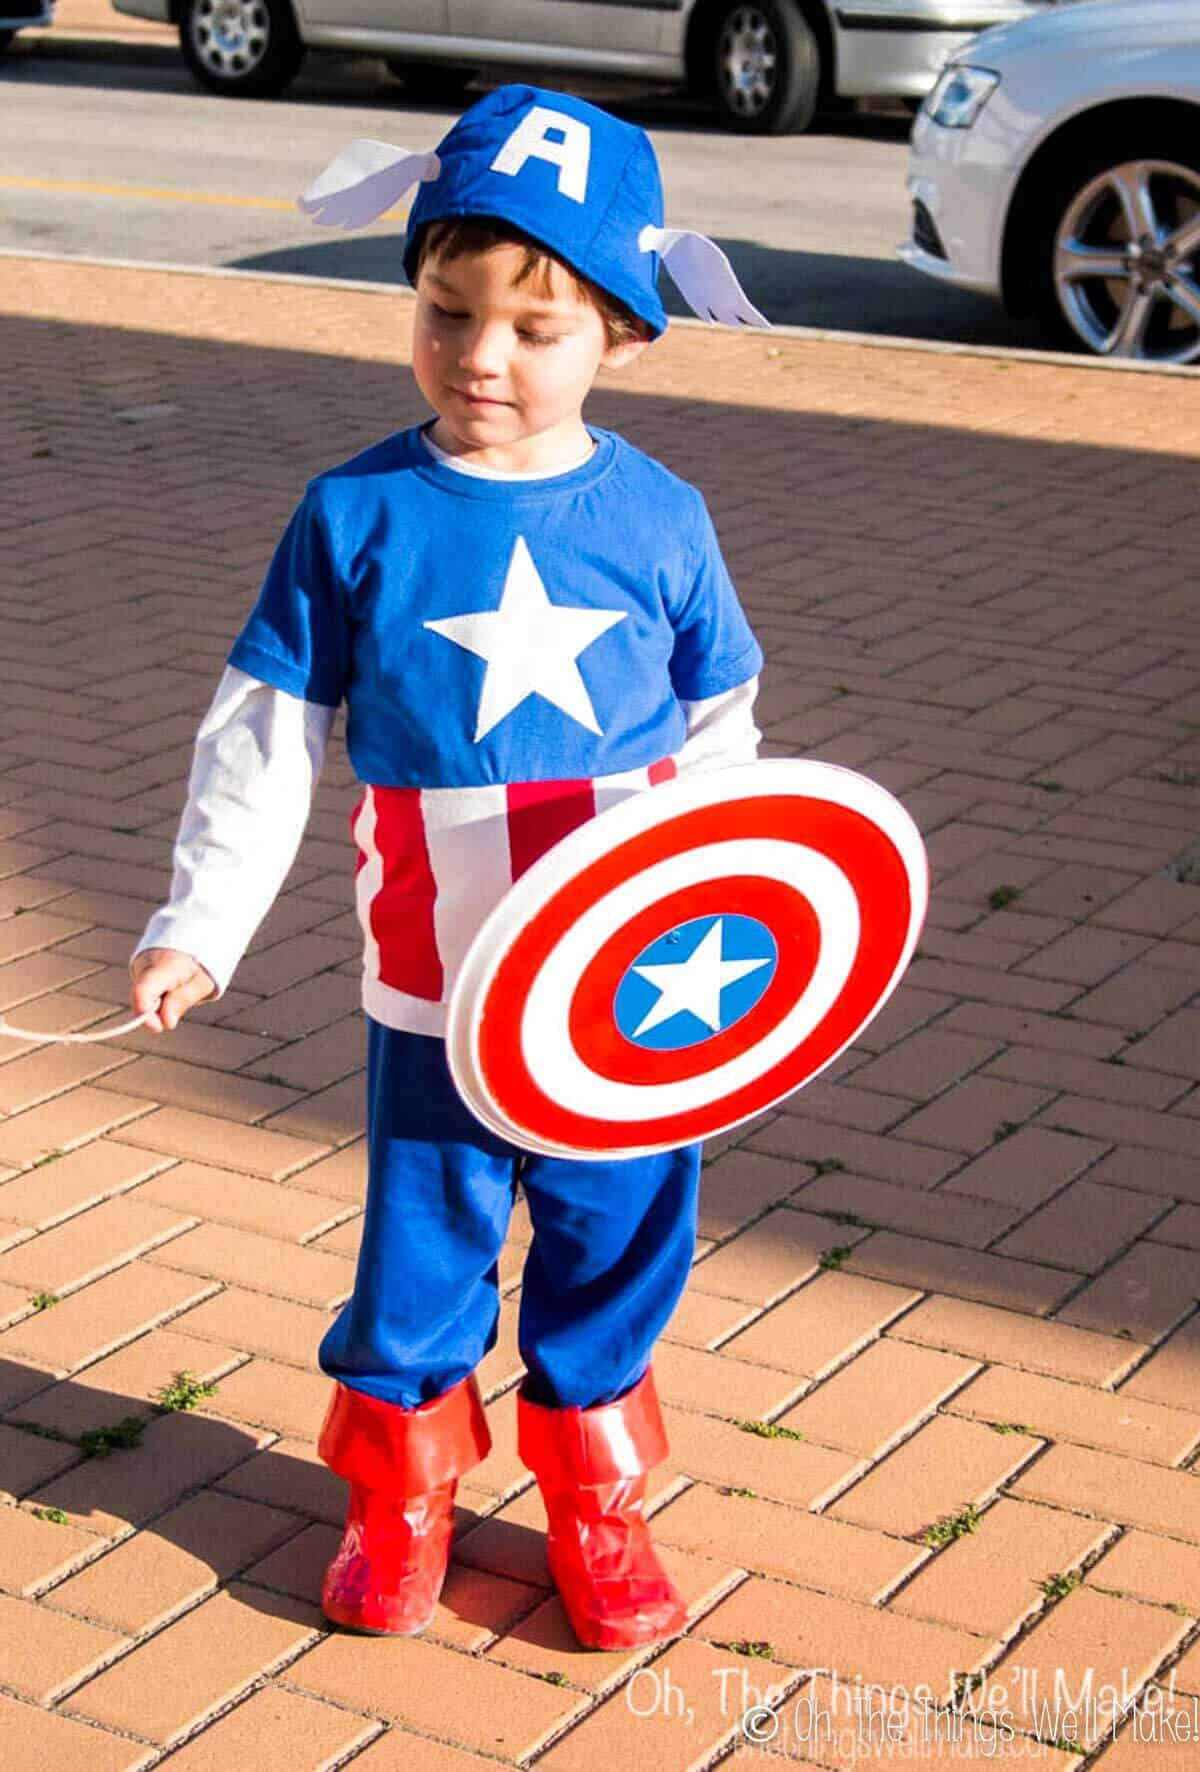 A young boy in a homemade Captain America Costume